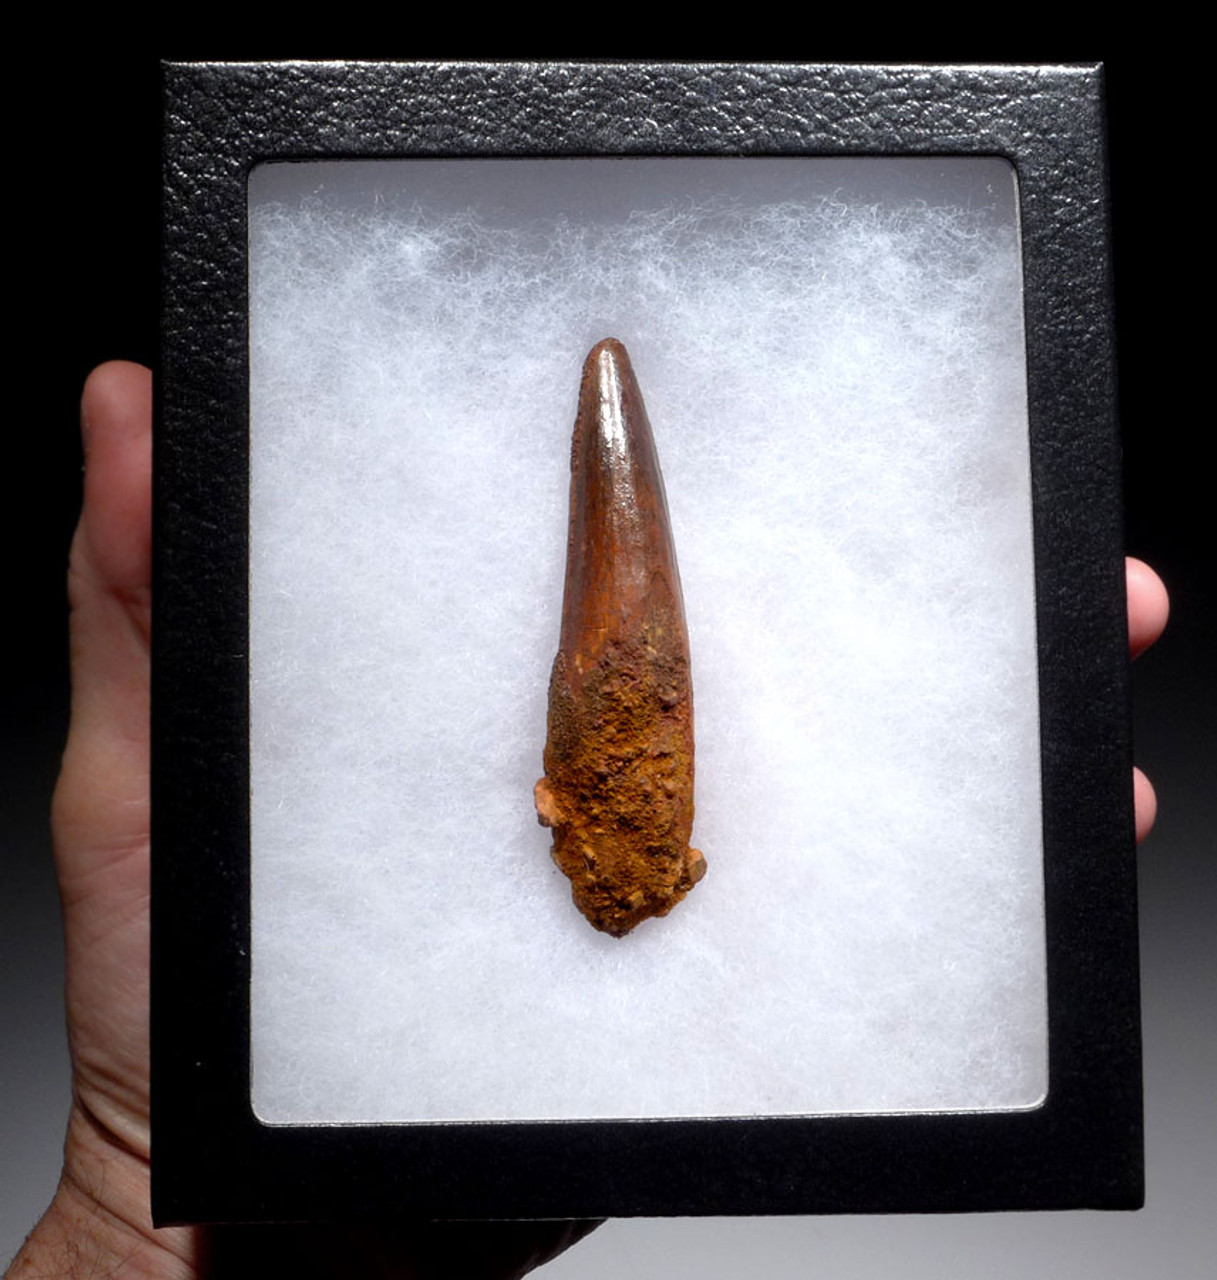 SUPREME UNBROKEN 3.5 INCH SPINOSAURUS FOSSIL TOOTH WITH A SHARP TIP *DT5-347